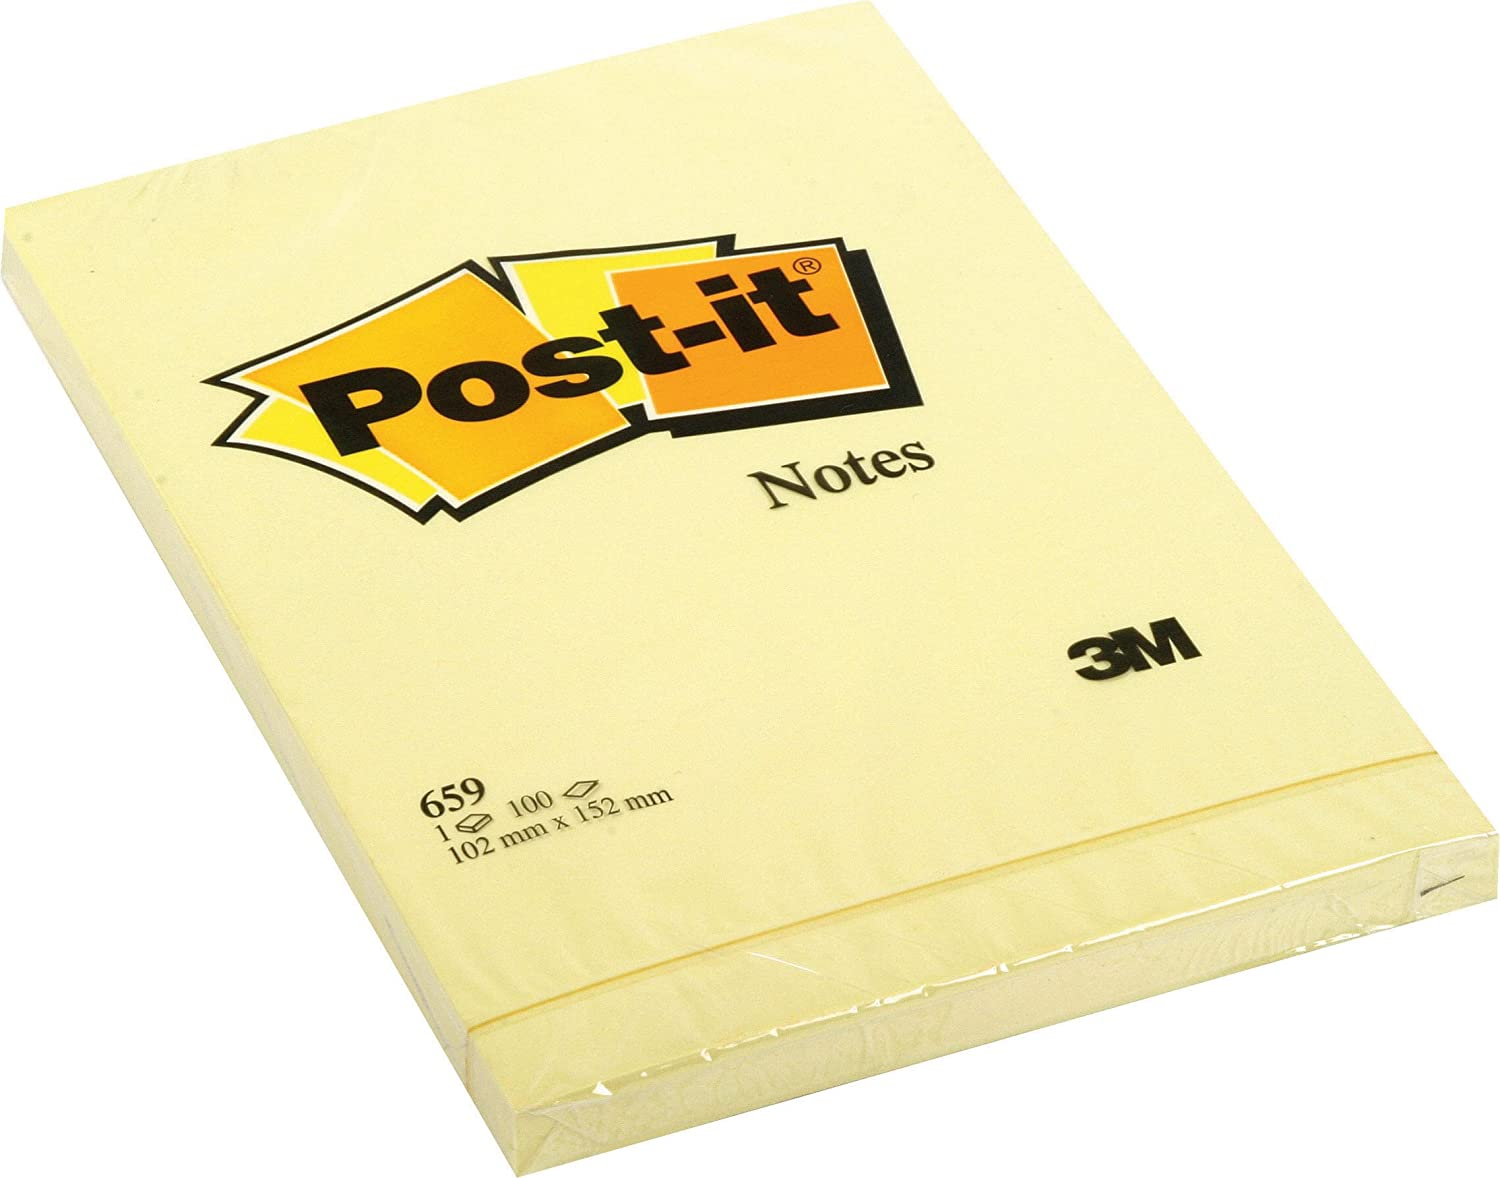 Post-it Brand 94293 Large Notes, 100 Fogli, 102 mm x 152 mm, 6 pezzi 3M ITALIA SRL 659